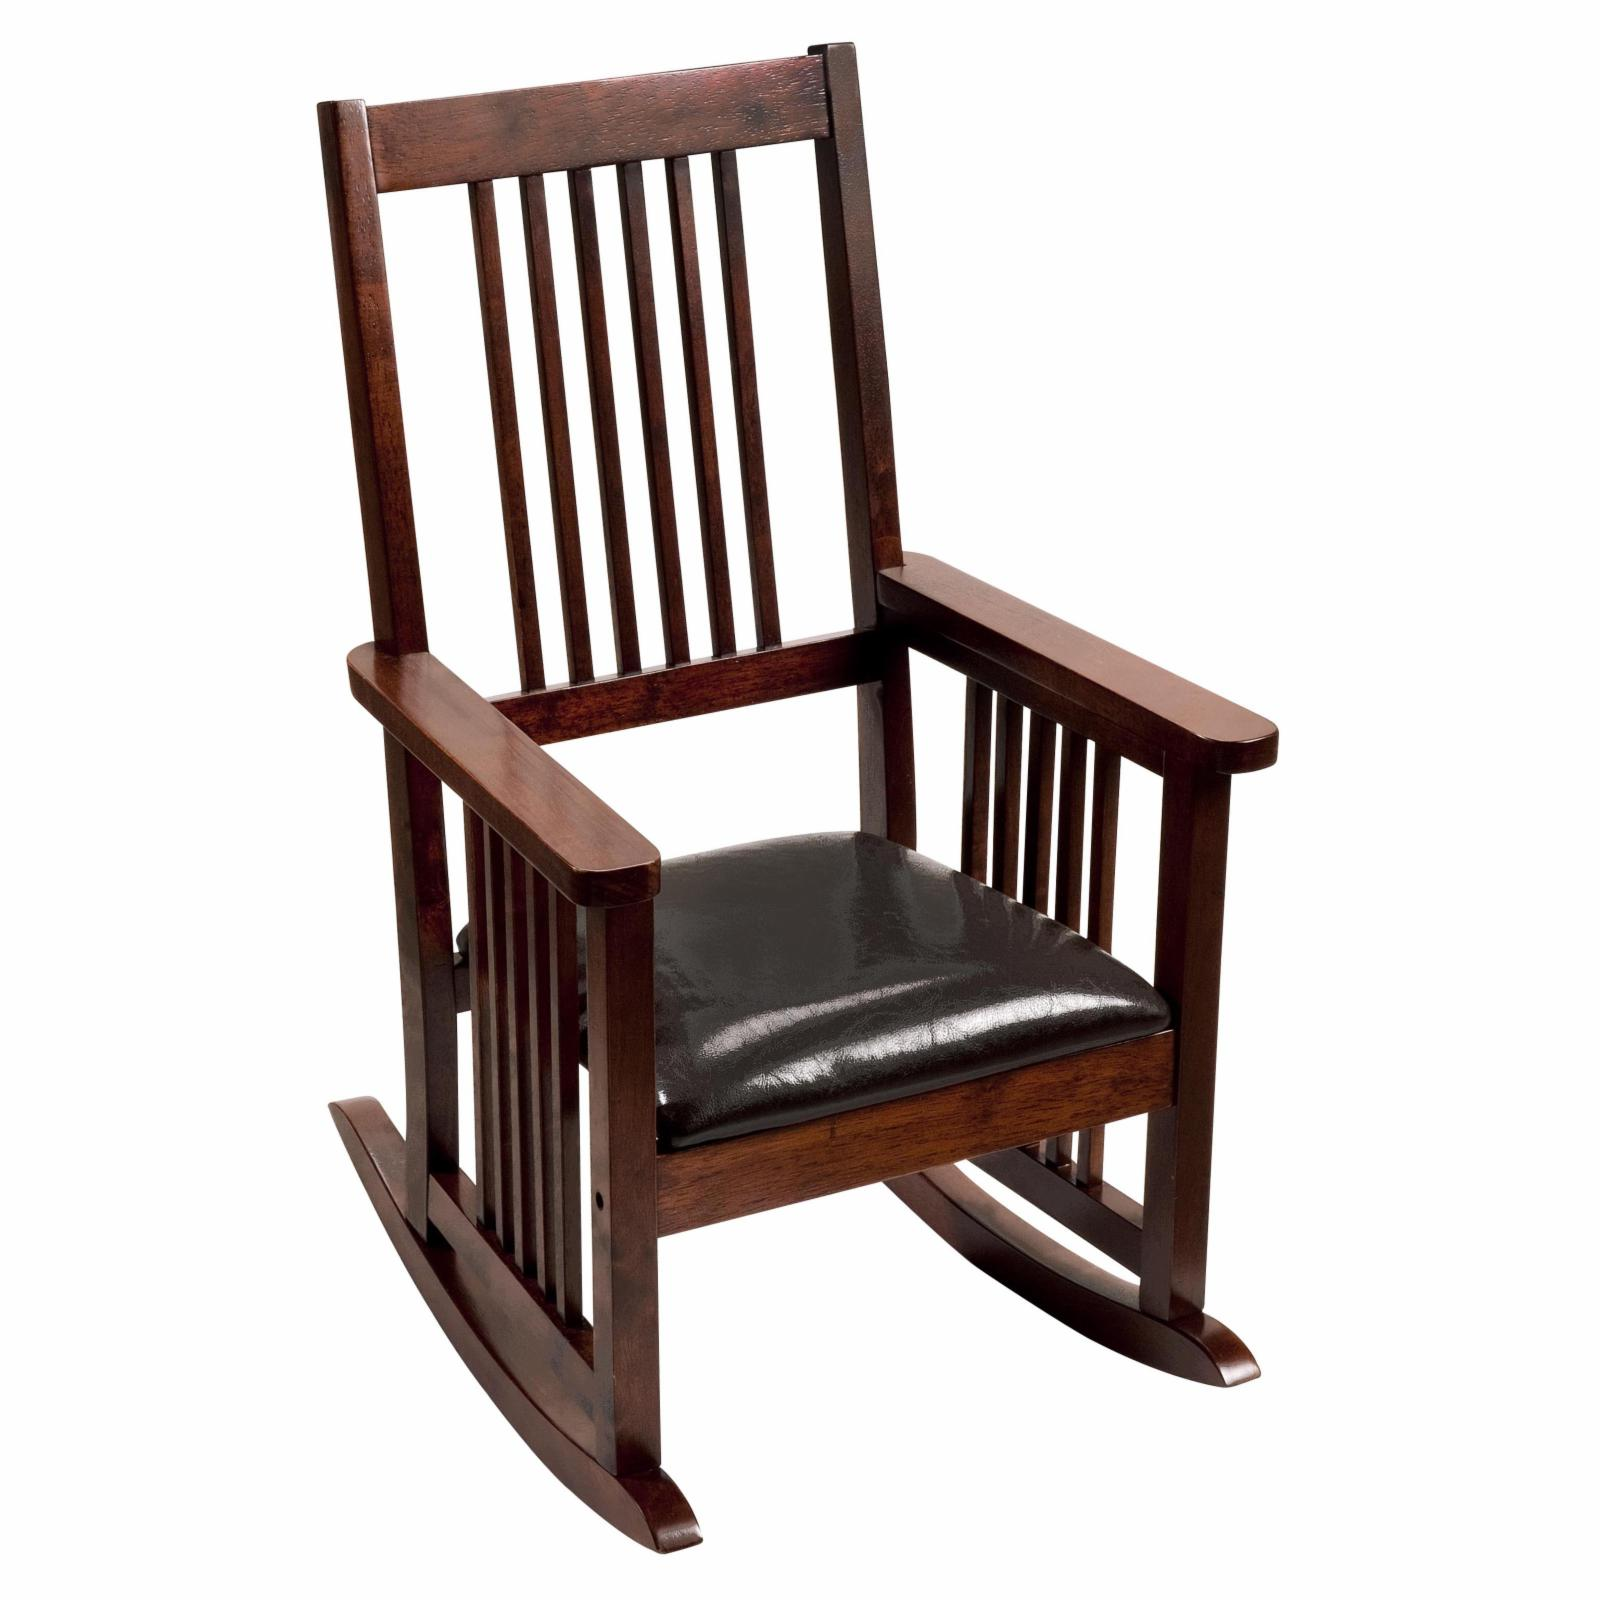 GiftMark Mission Style Childrens Rocking Chair with Uphol...